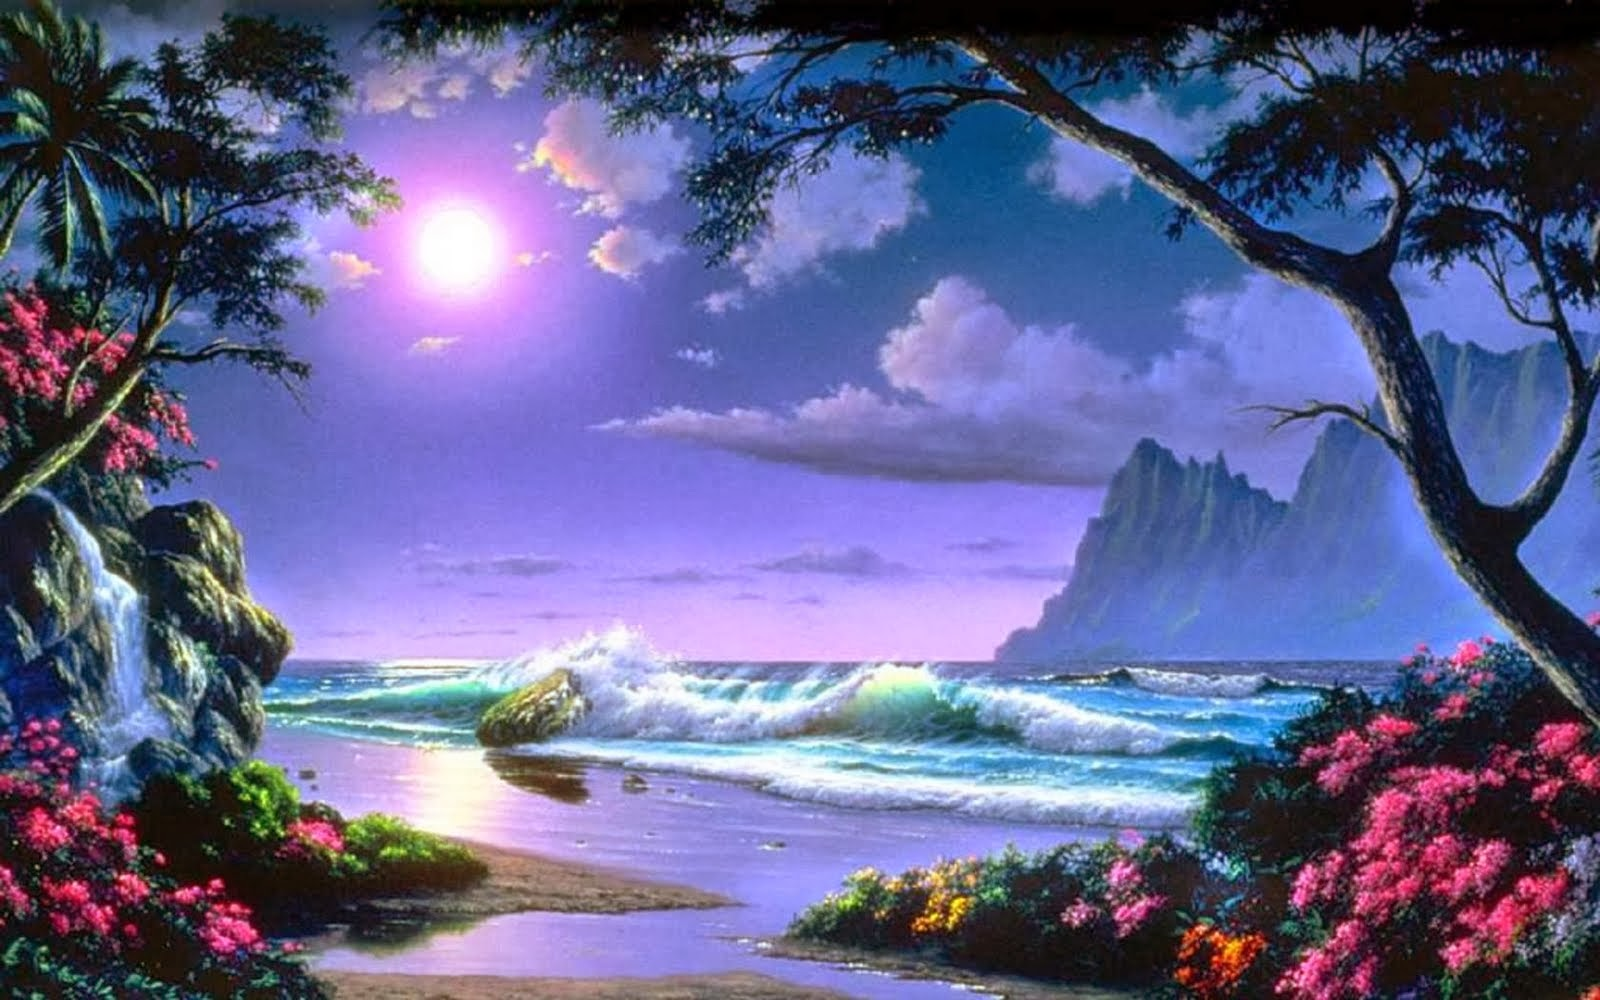 beautiful hd images wallpapers beautiful hd images wallpapers 1600x1000